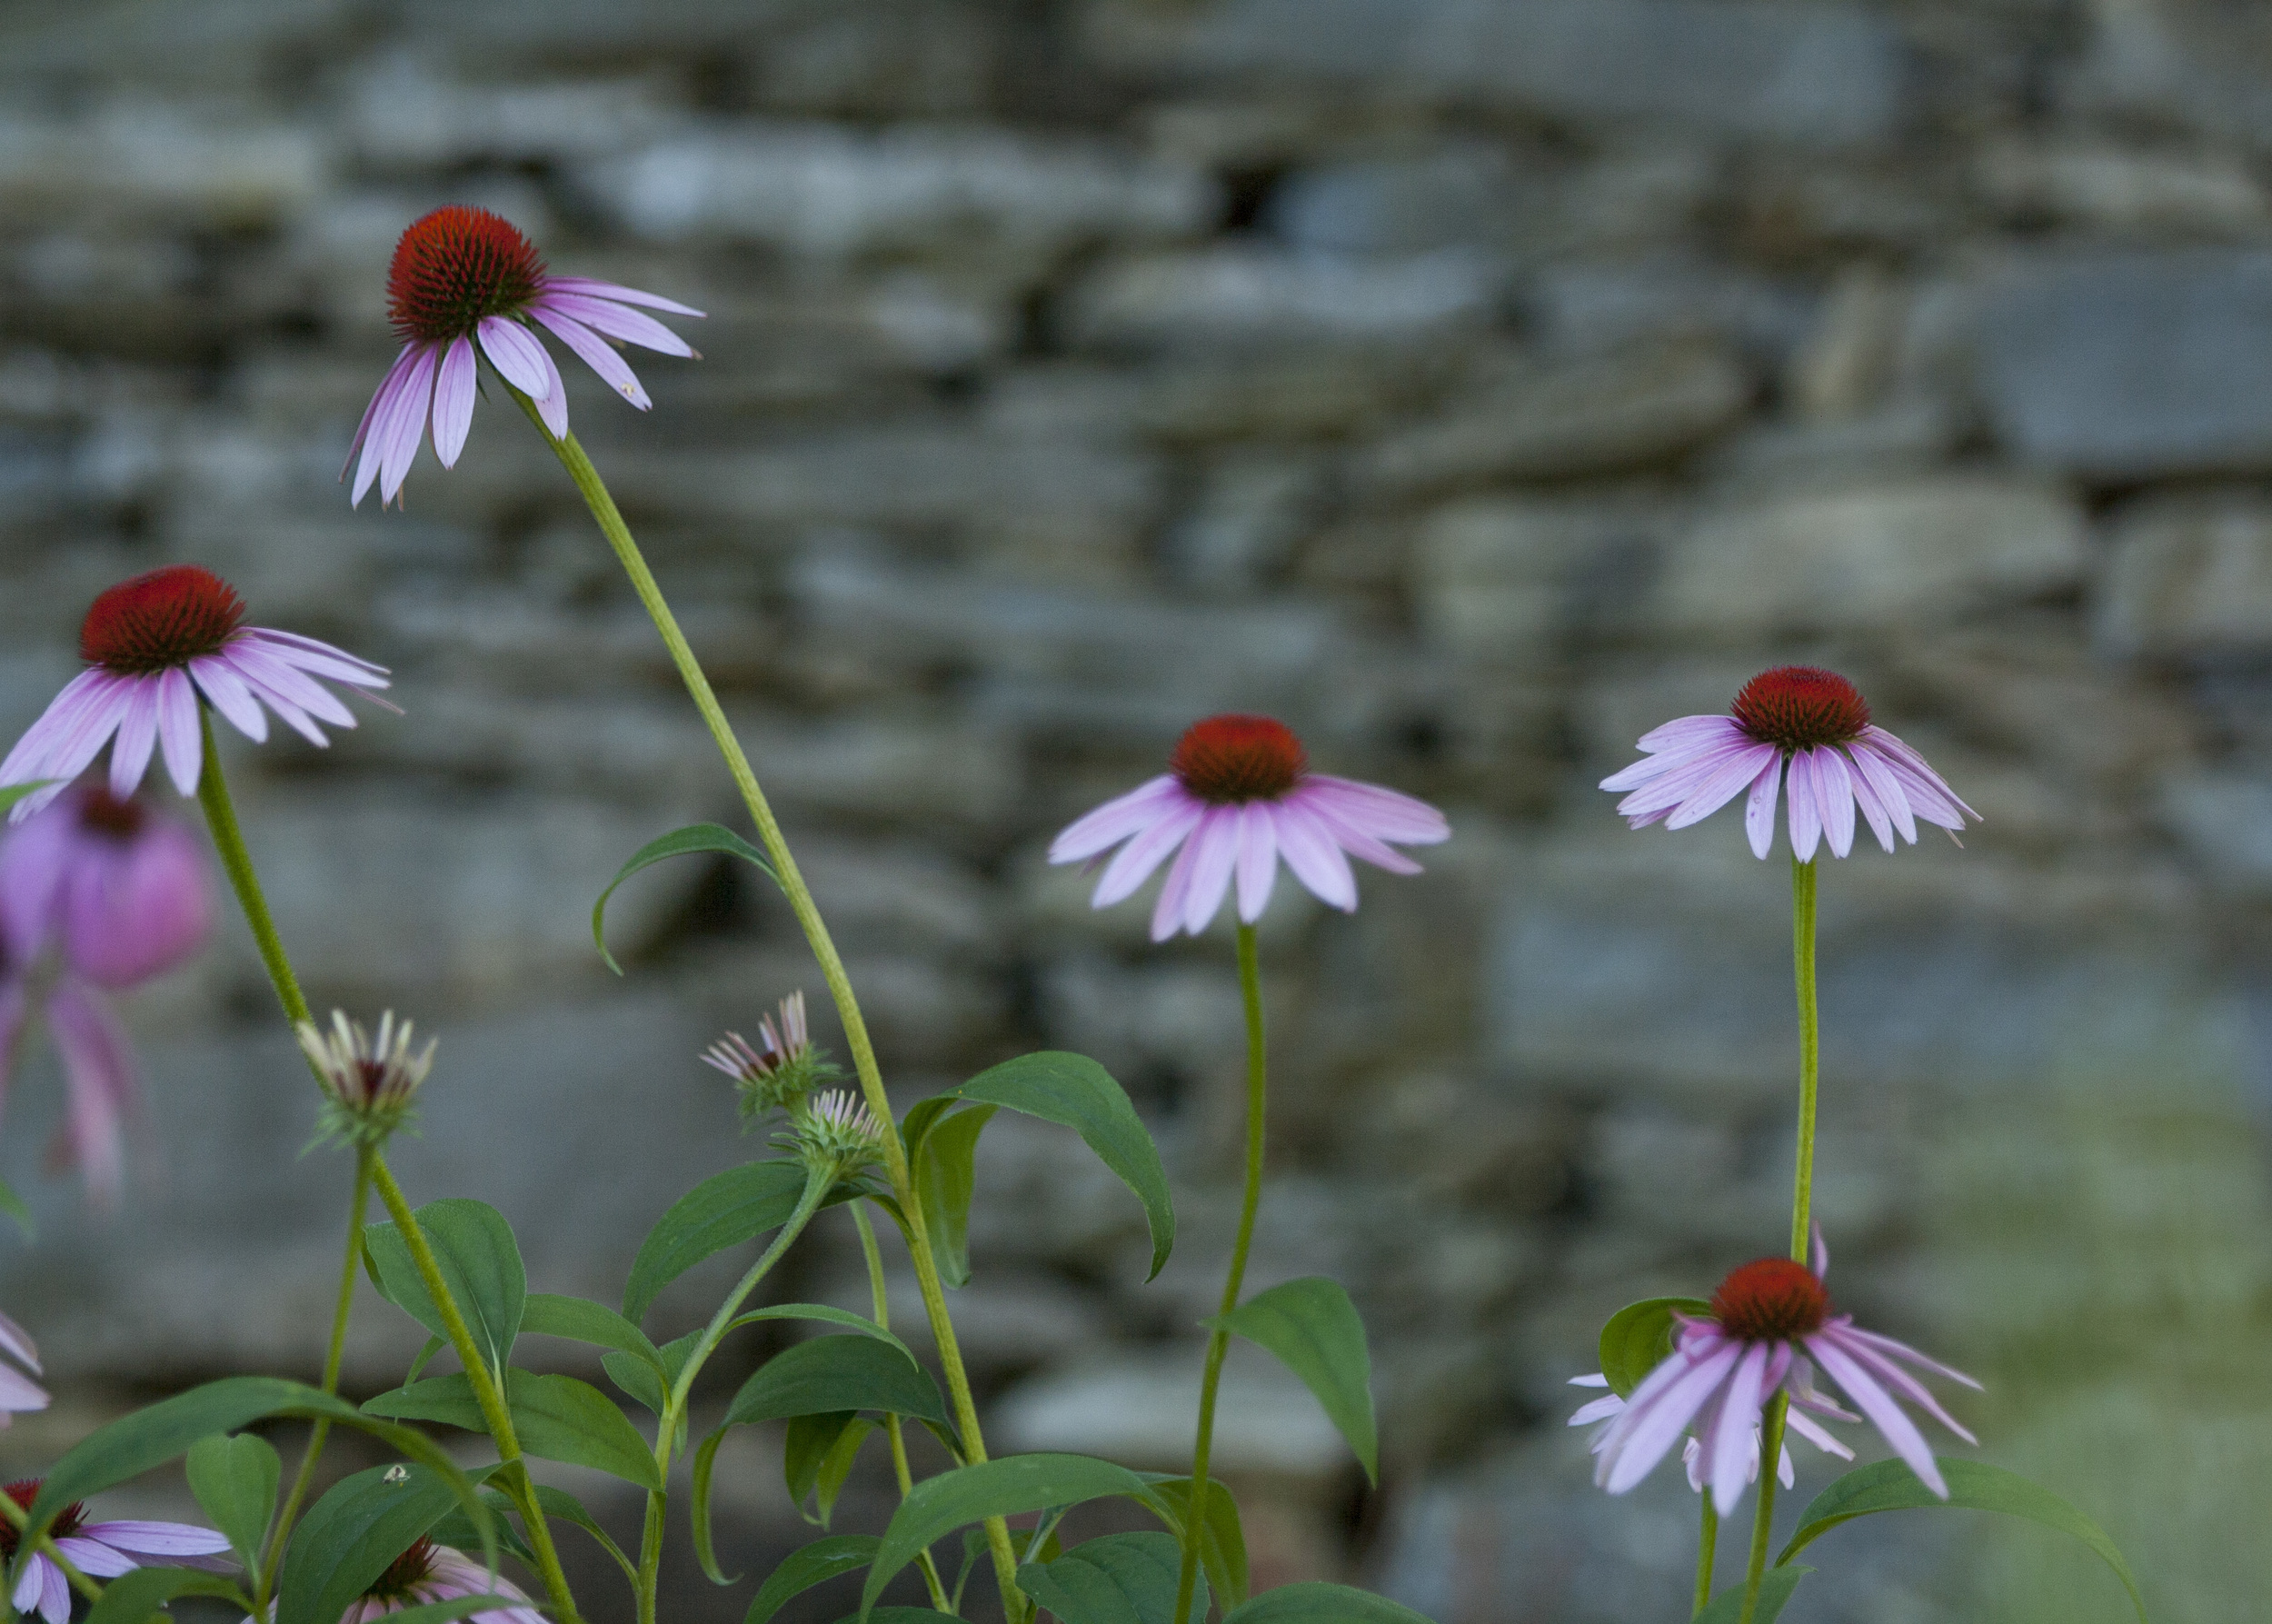 Landscape Design | Terrace Gardens Echinacea Coneflower | Dry Lay Stone | Waterfront Dream Home | Riverview Design Solutions | Prescott, Ontario, Canada